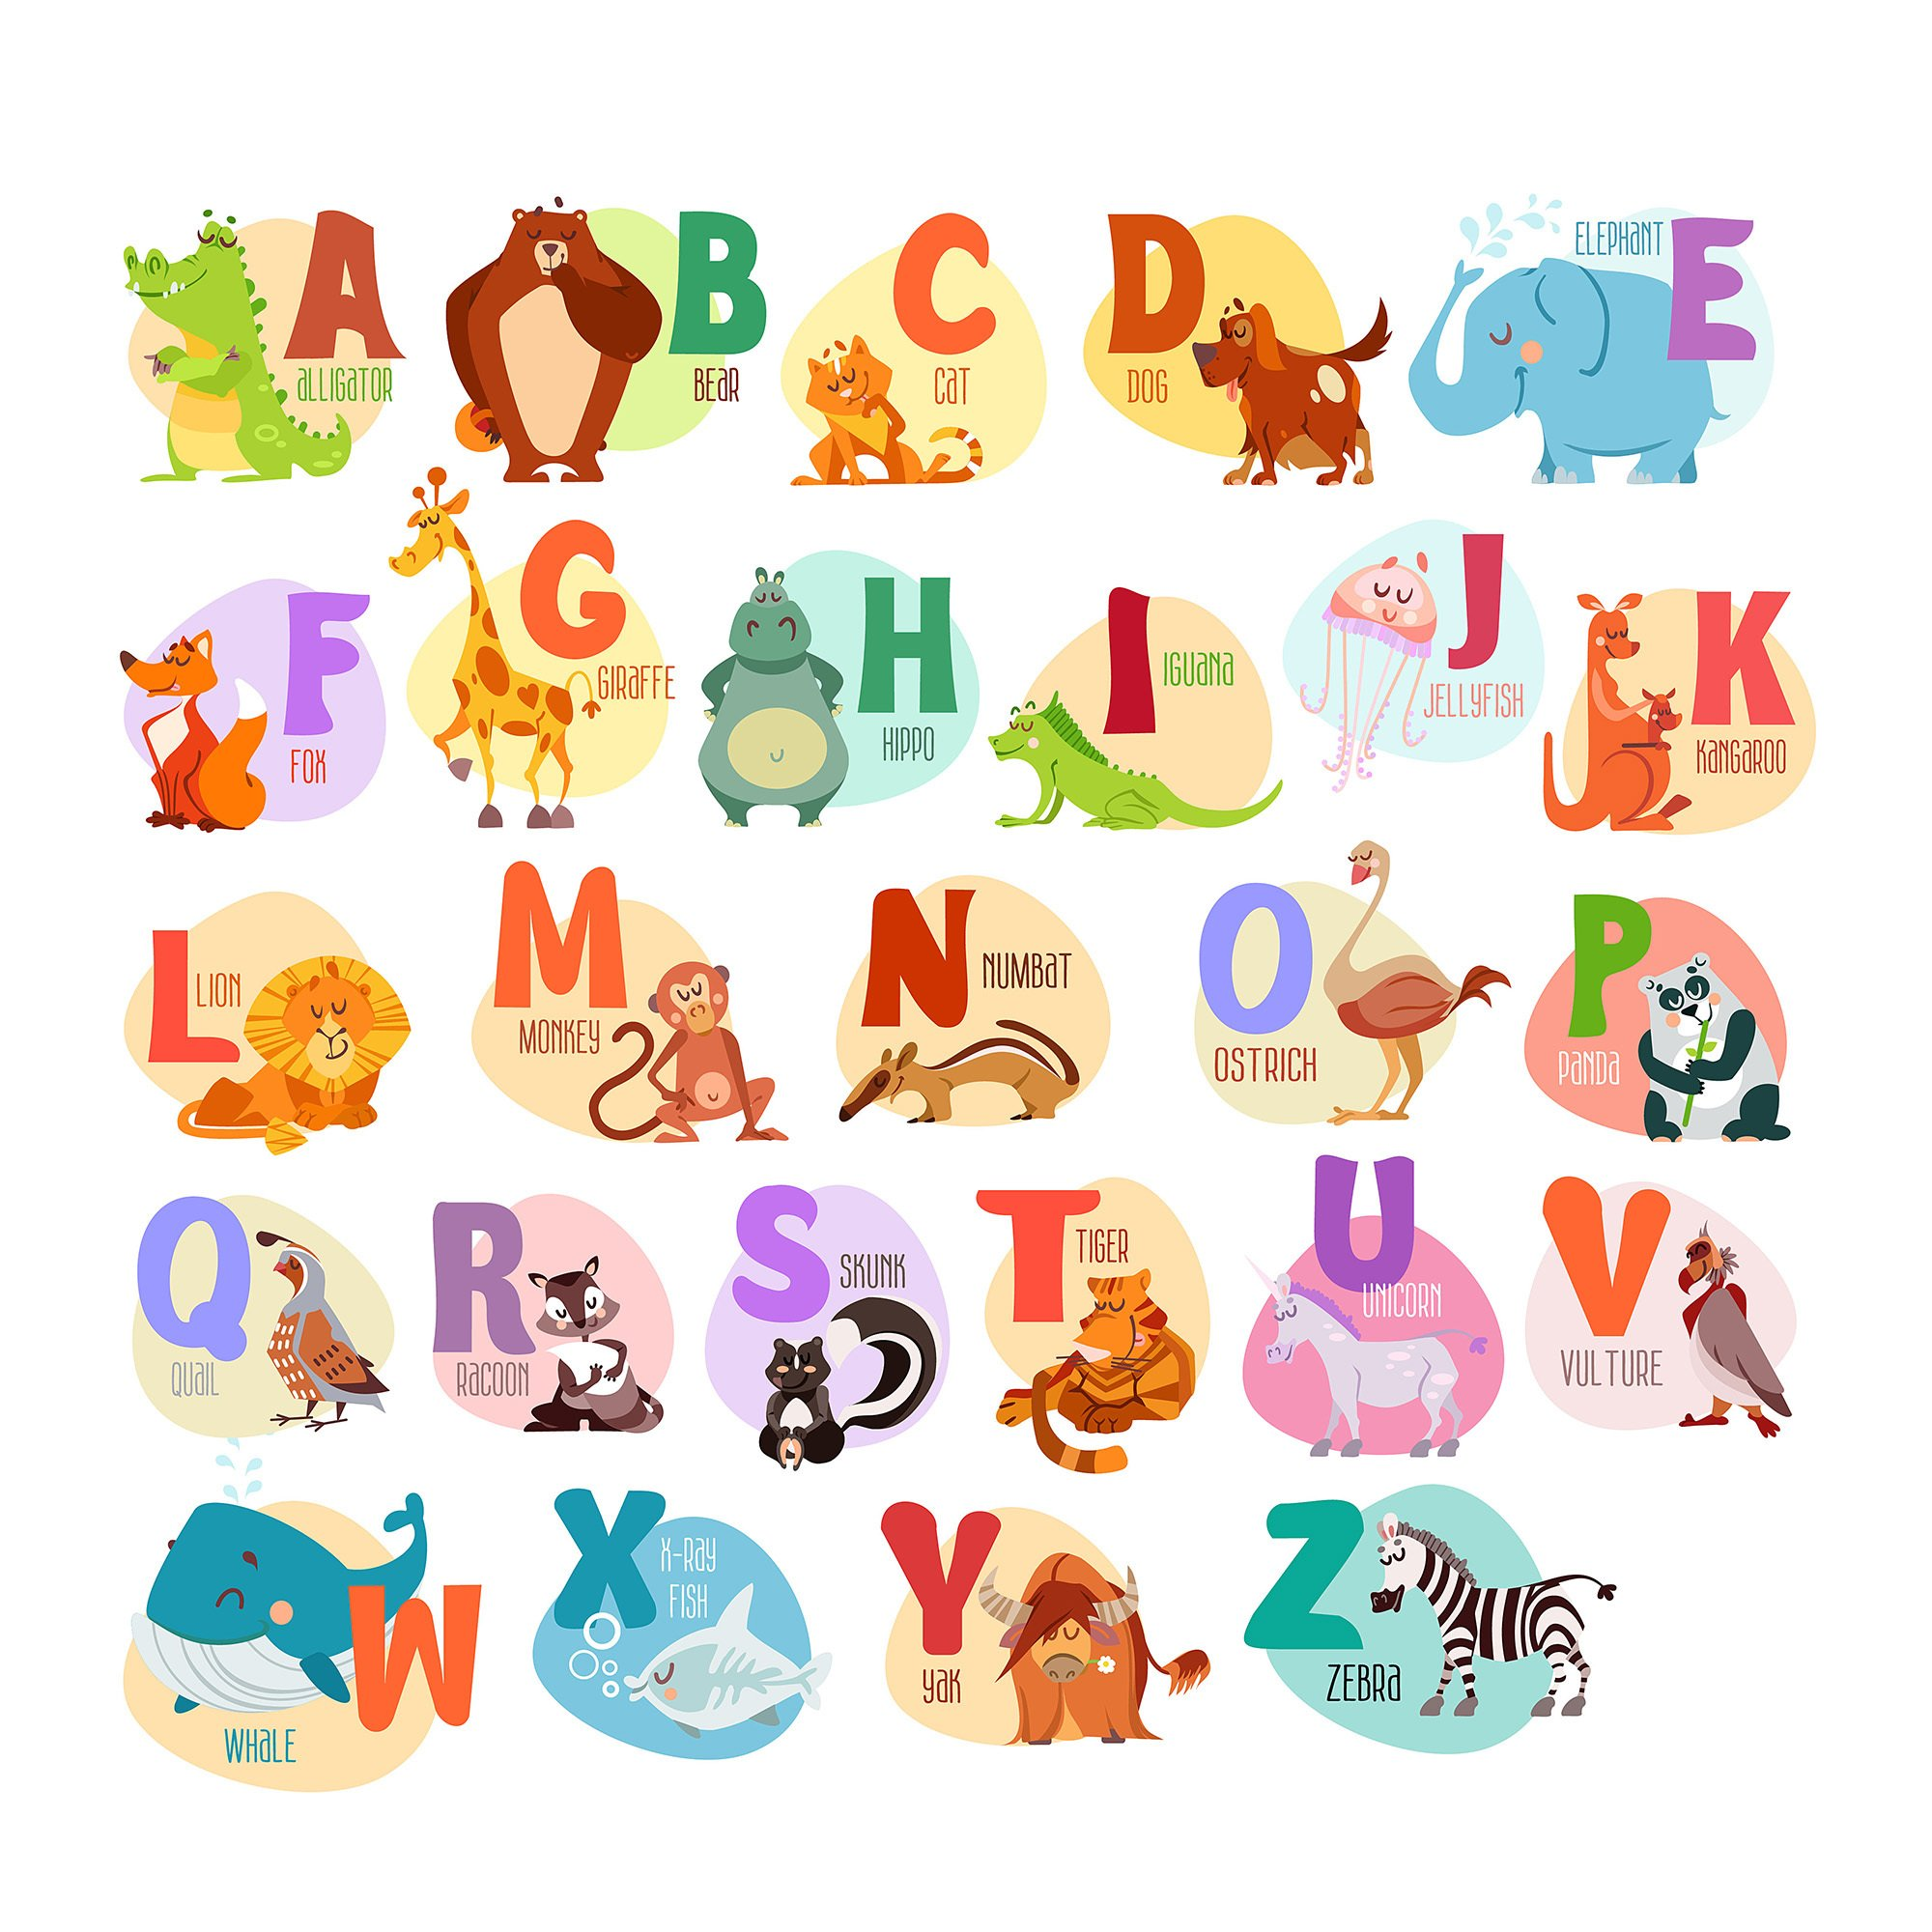 7ProductGroup Alphabet Animals ABC Wall Decals Peel and Stick Easily Removable for Daycare School Kids Room Decoration Decals For Baby Boys Girls Nursery Educational Wall Art (Large Alphabet)